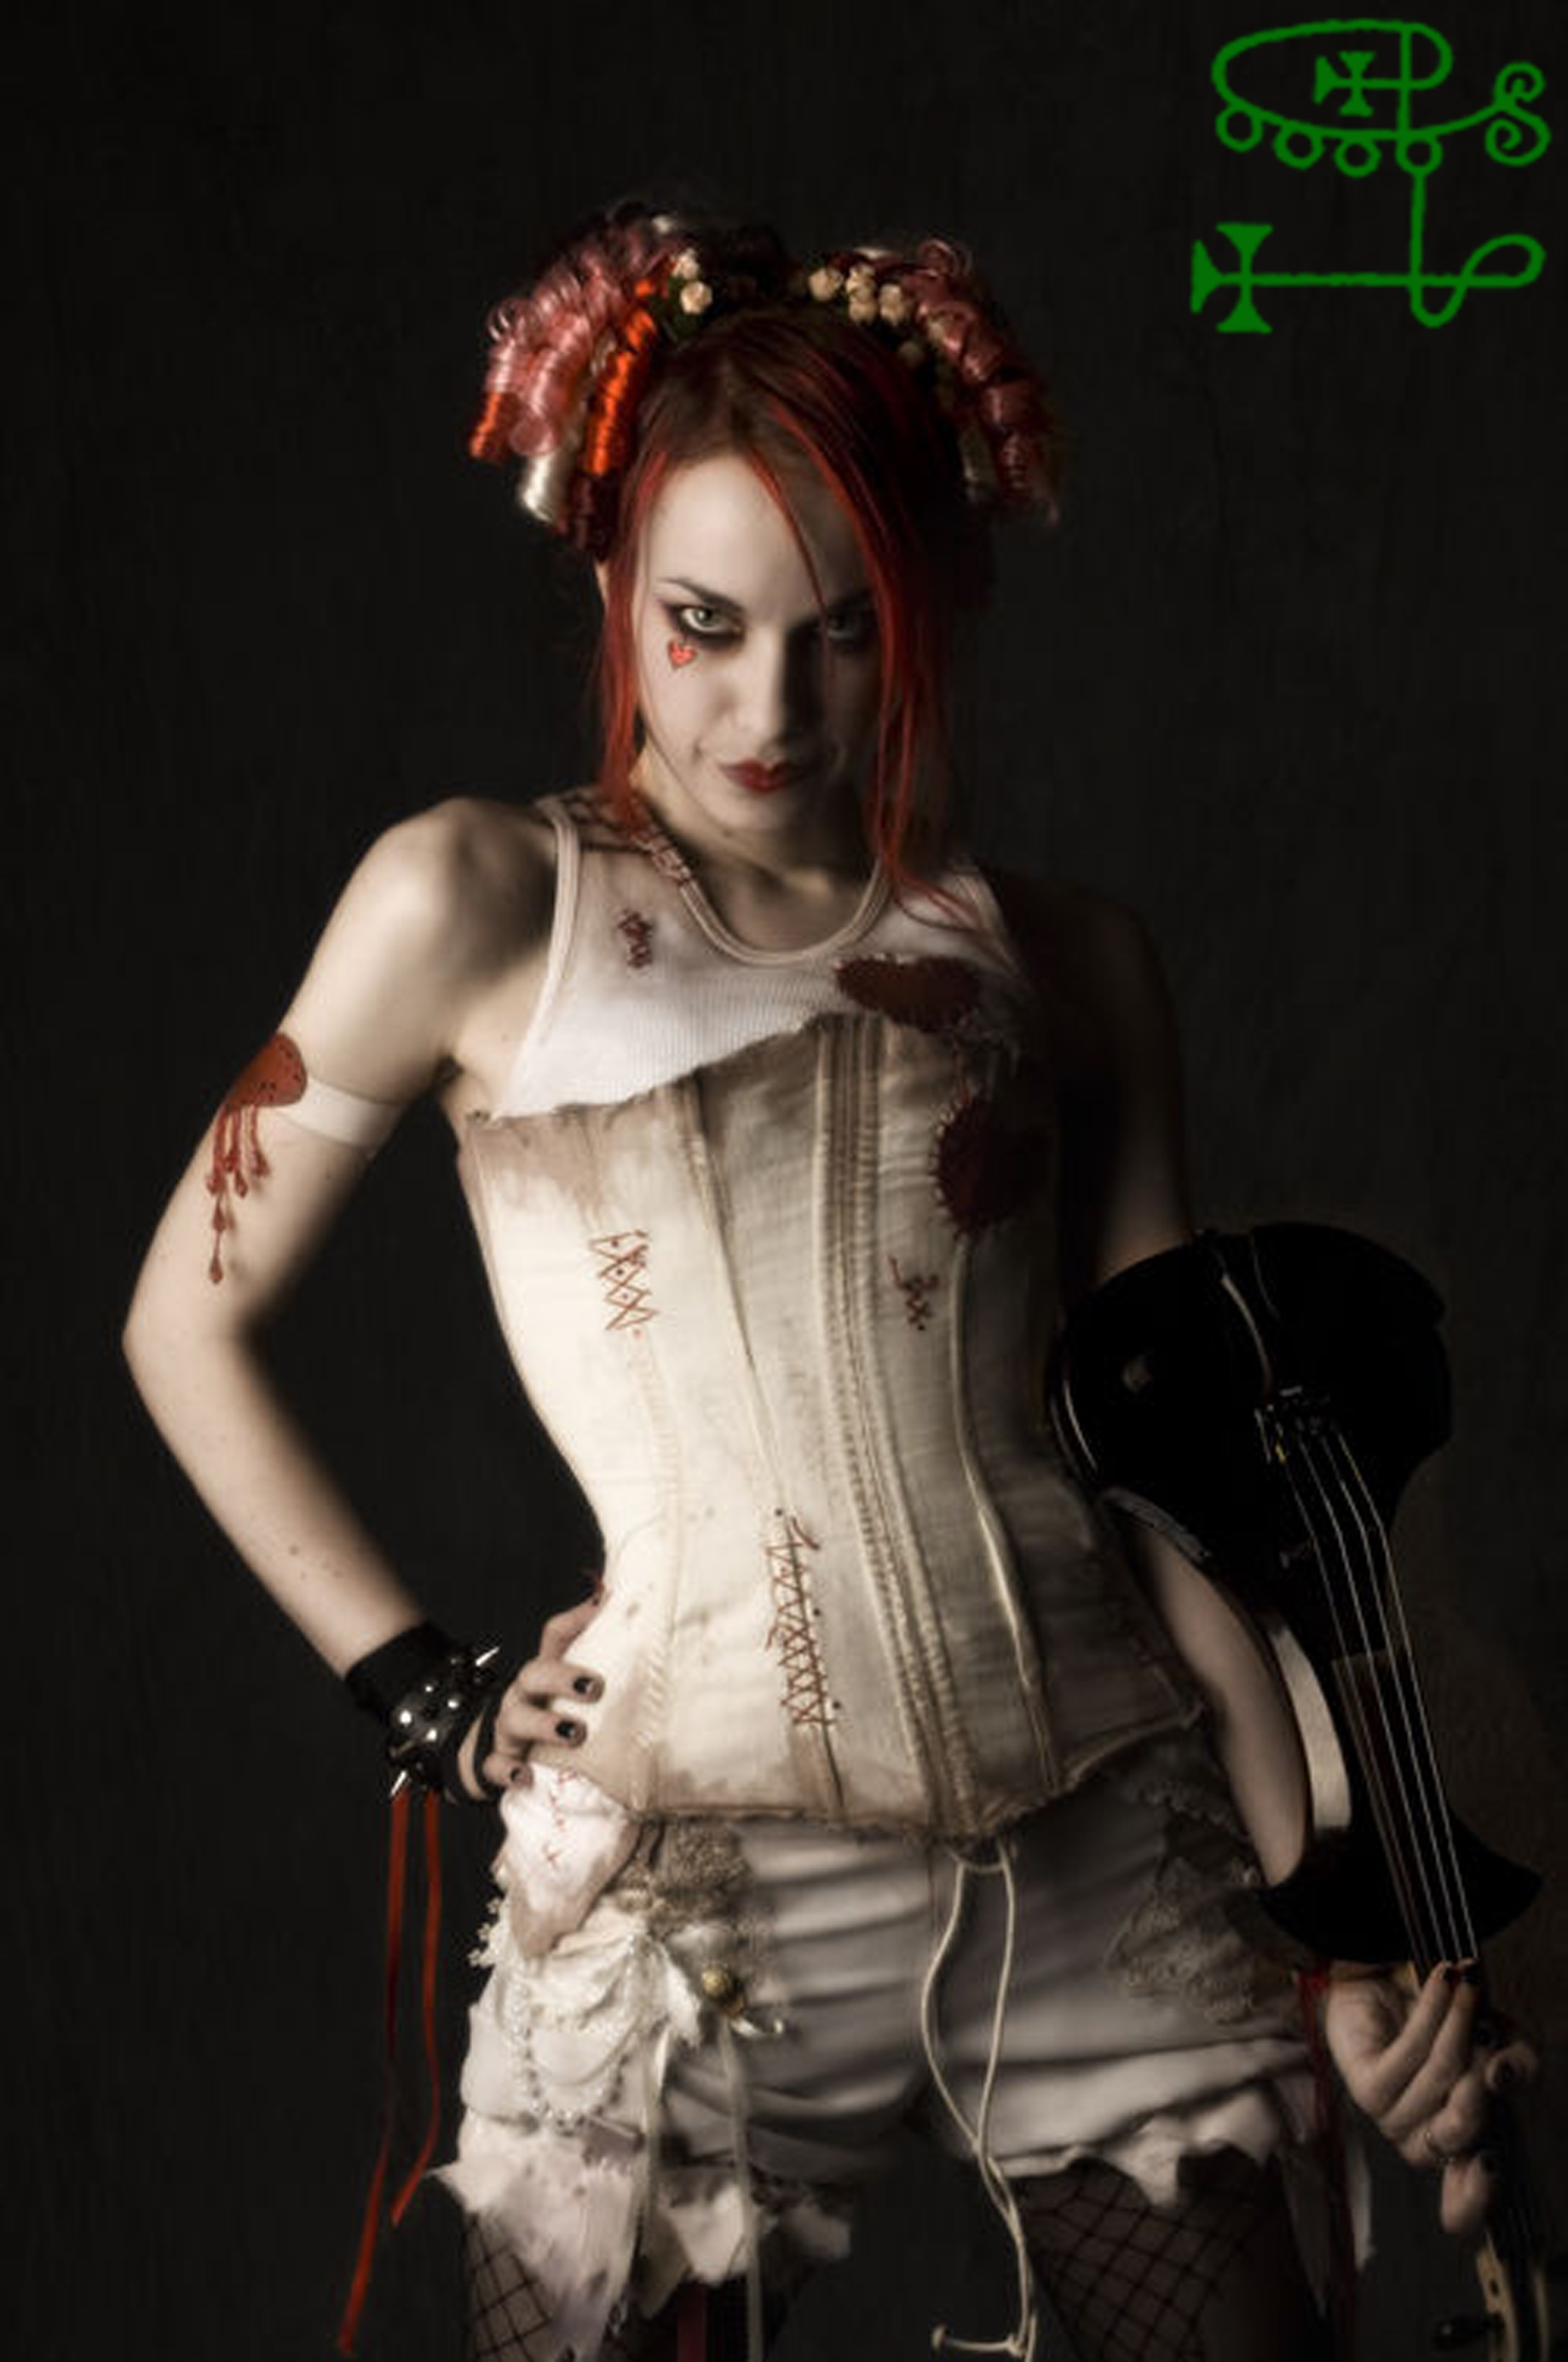 Emilie Autumn Nude Photos 64